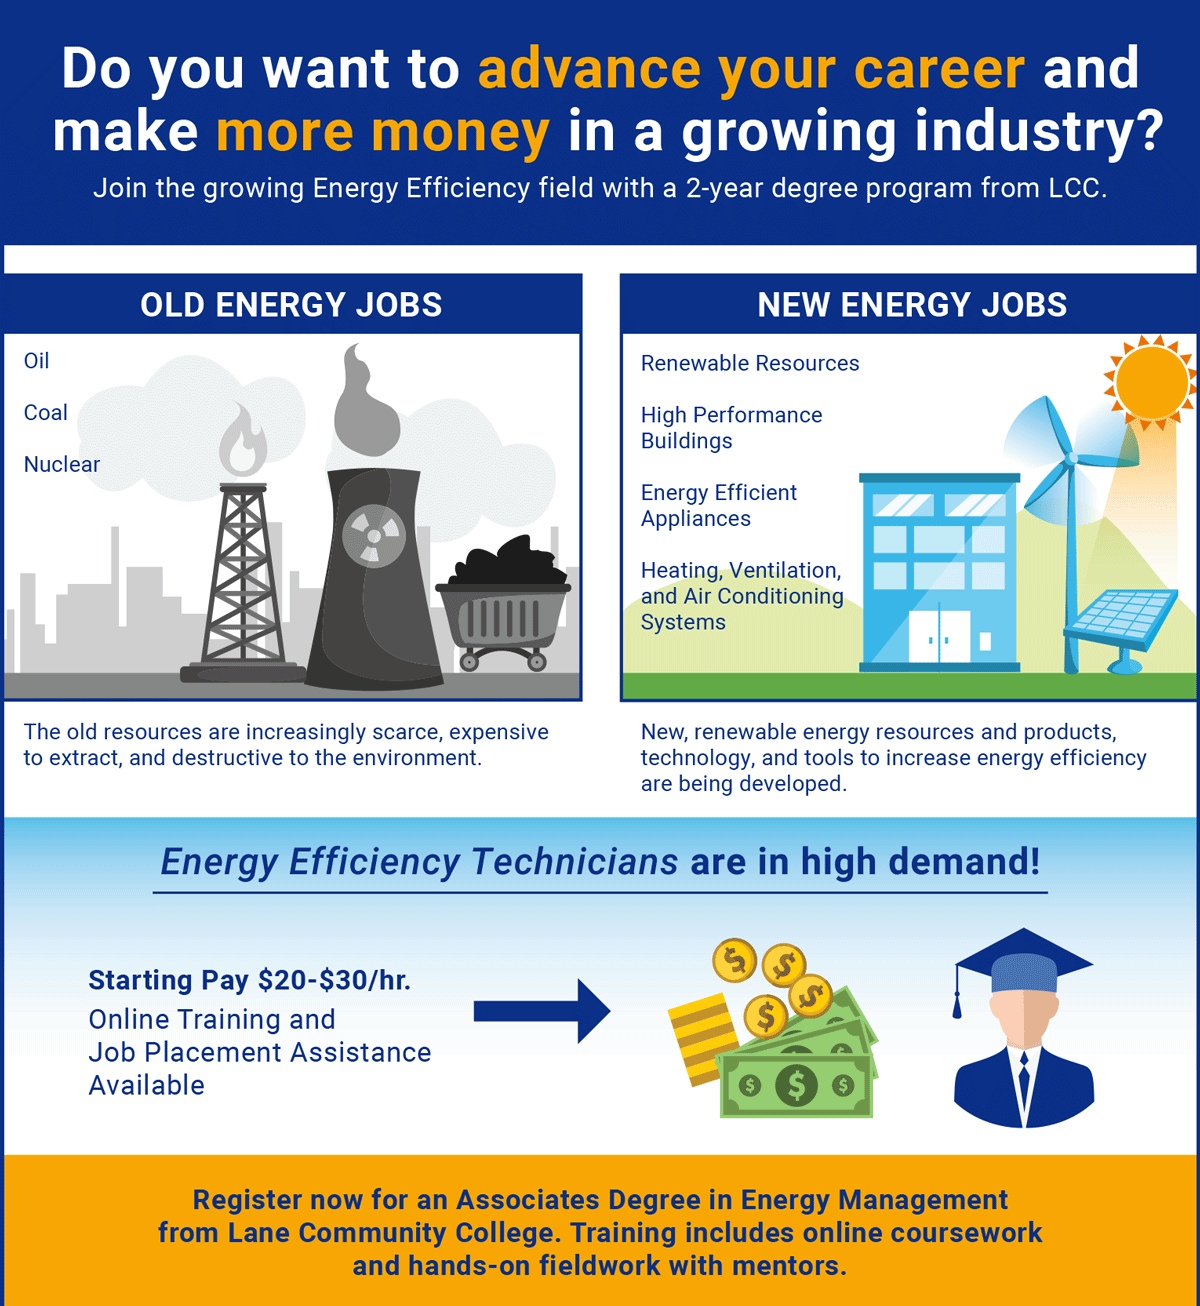 Needed: Skilled Workers in Energy Efficiency Tech. Starting pay $20-25/hr with online training and job placement assistance available. Why is there so much demand for Energy Efficiency Technicians? The way we produce and use energy globally is changing.